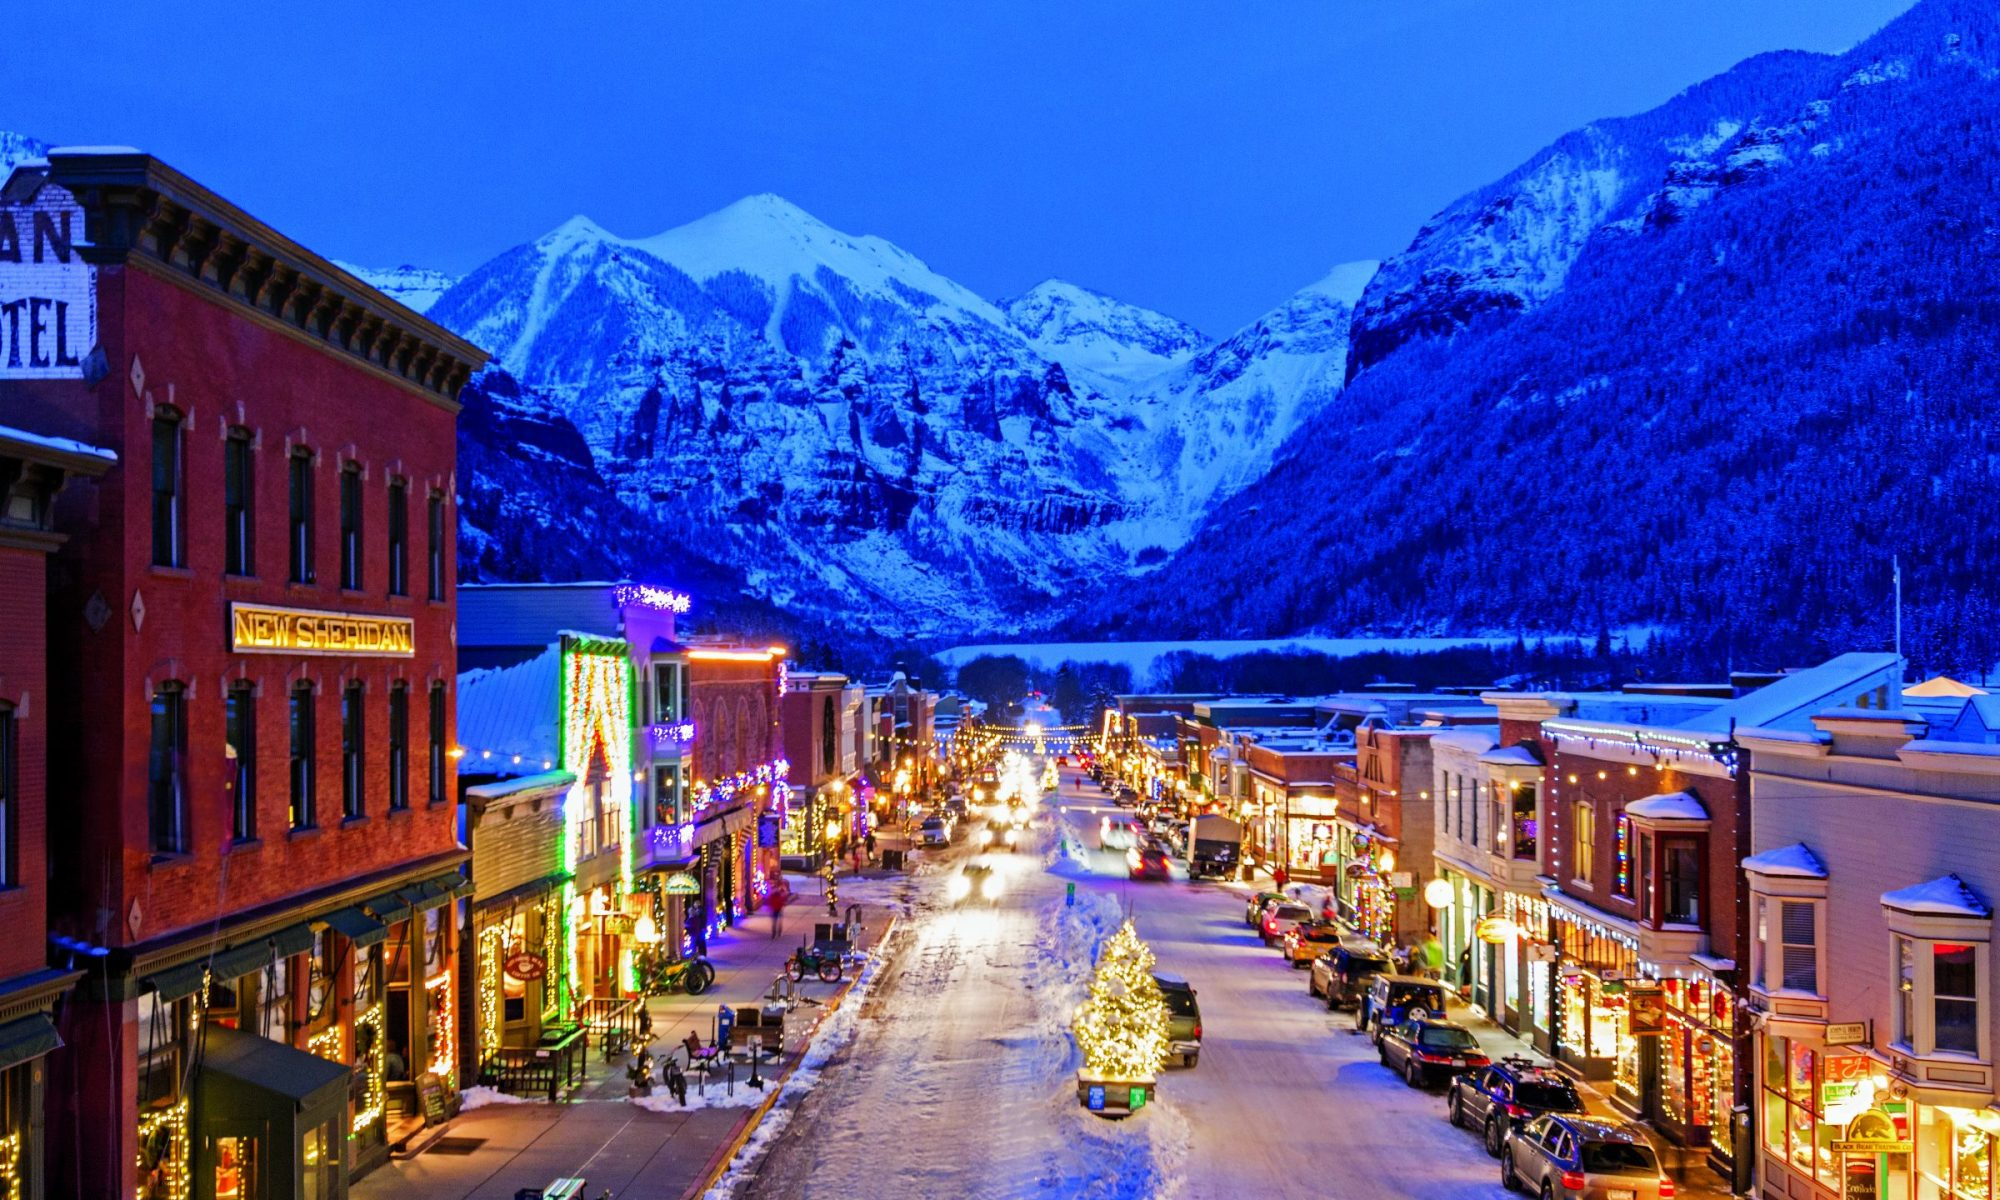 Main street downtown Telluride - Photo credits: Telluride Ski Resort.